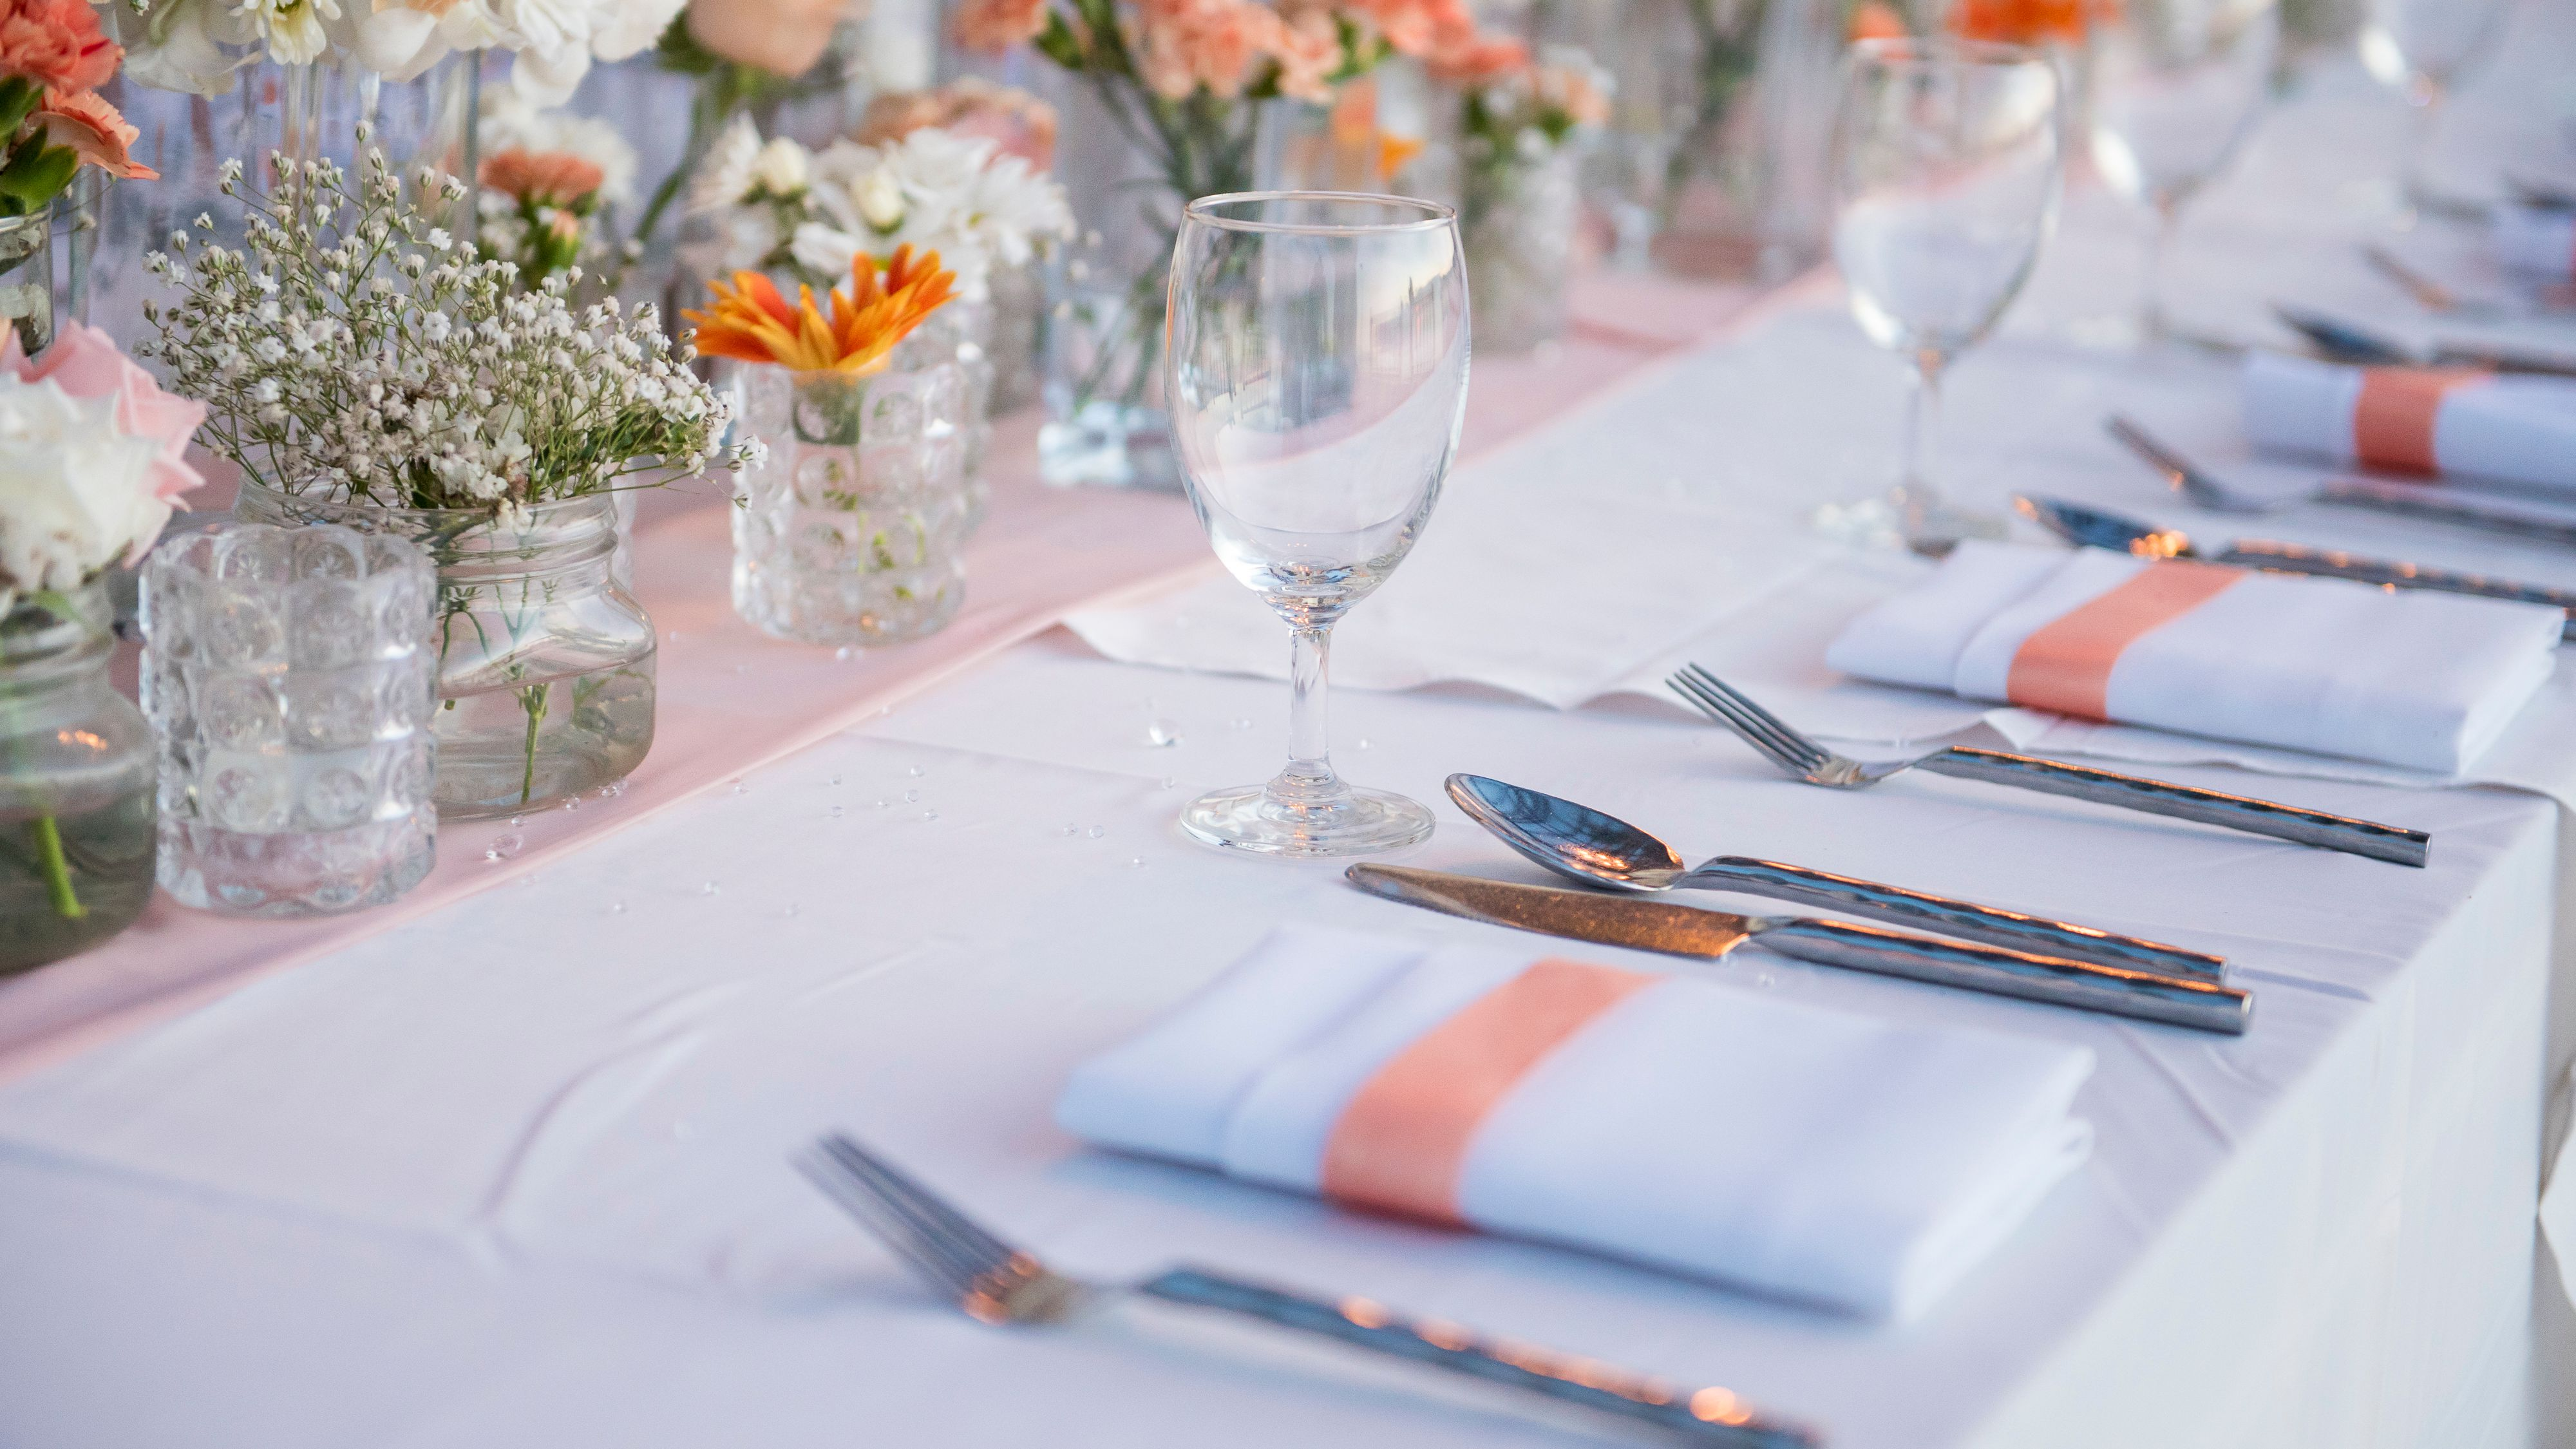 Iron And Tablecloths Linens